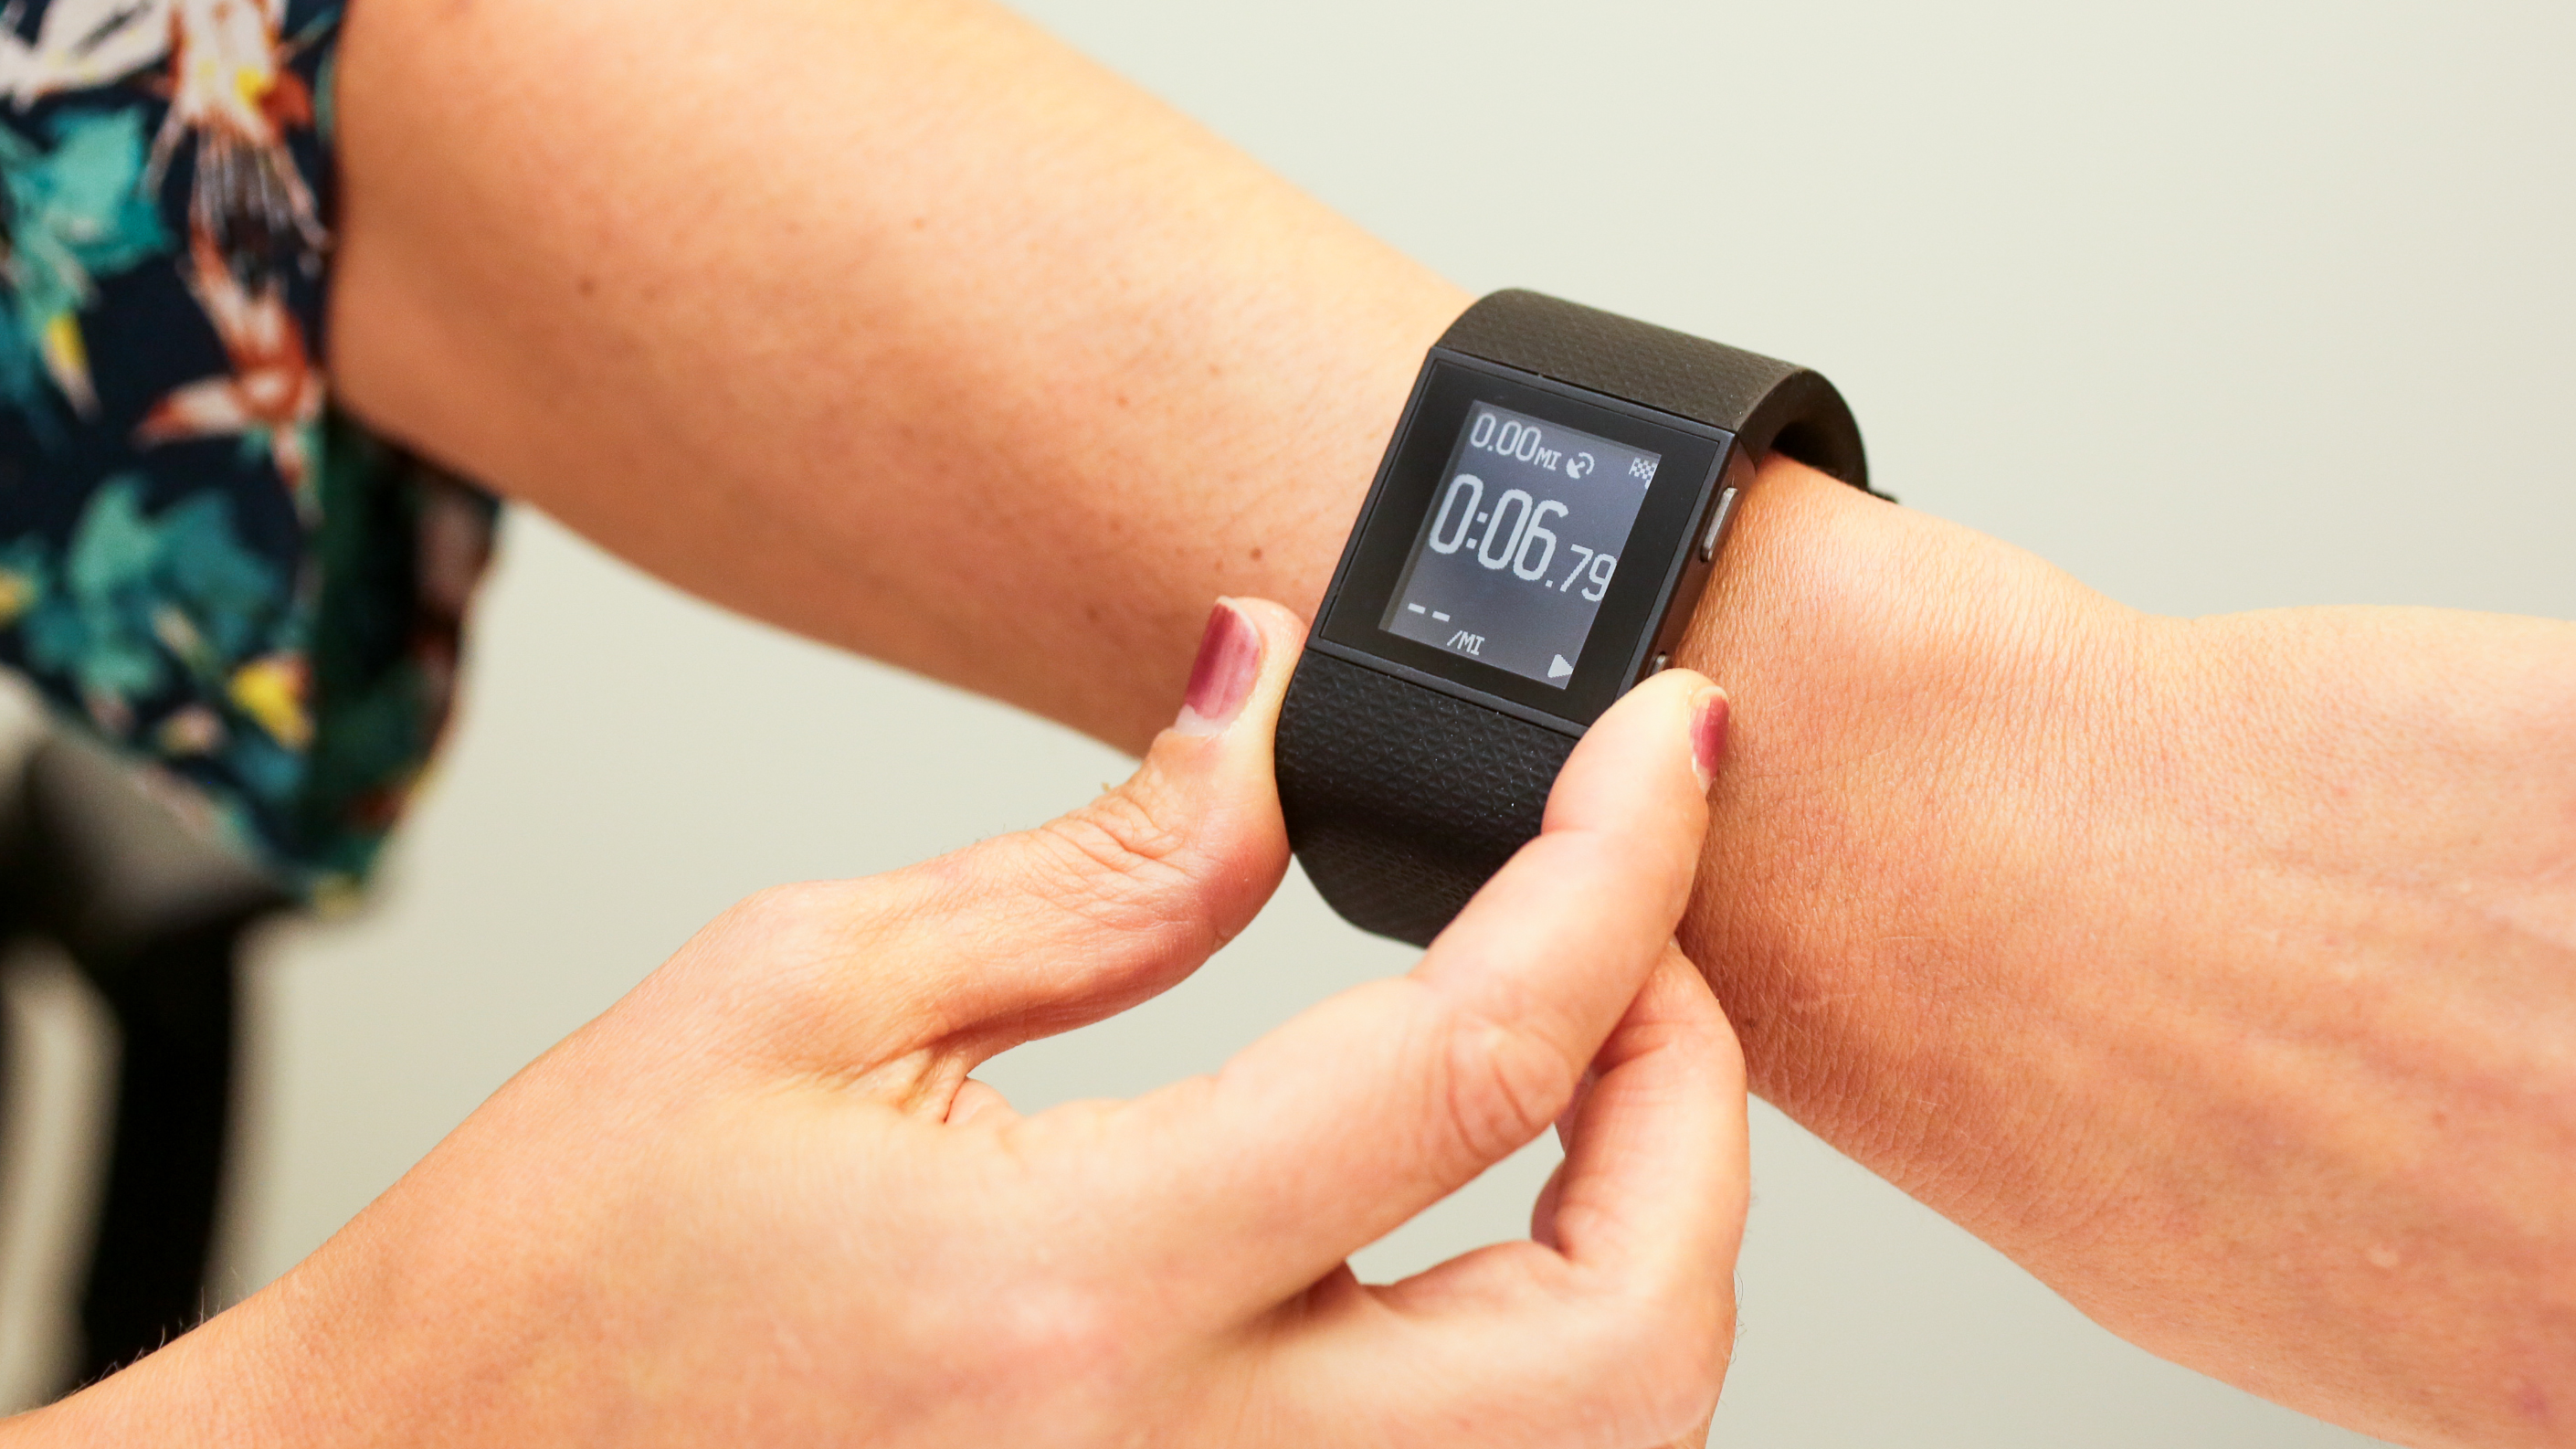 fitbit-charge-hr-surge-product-photos11.jpg